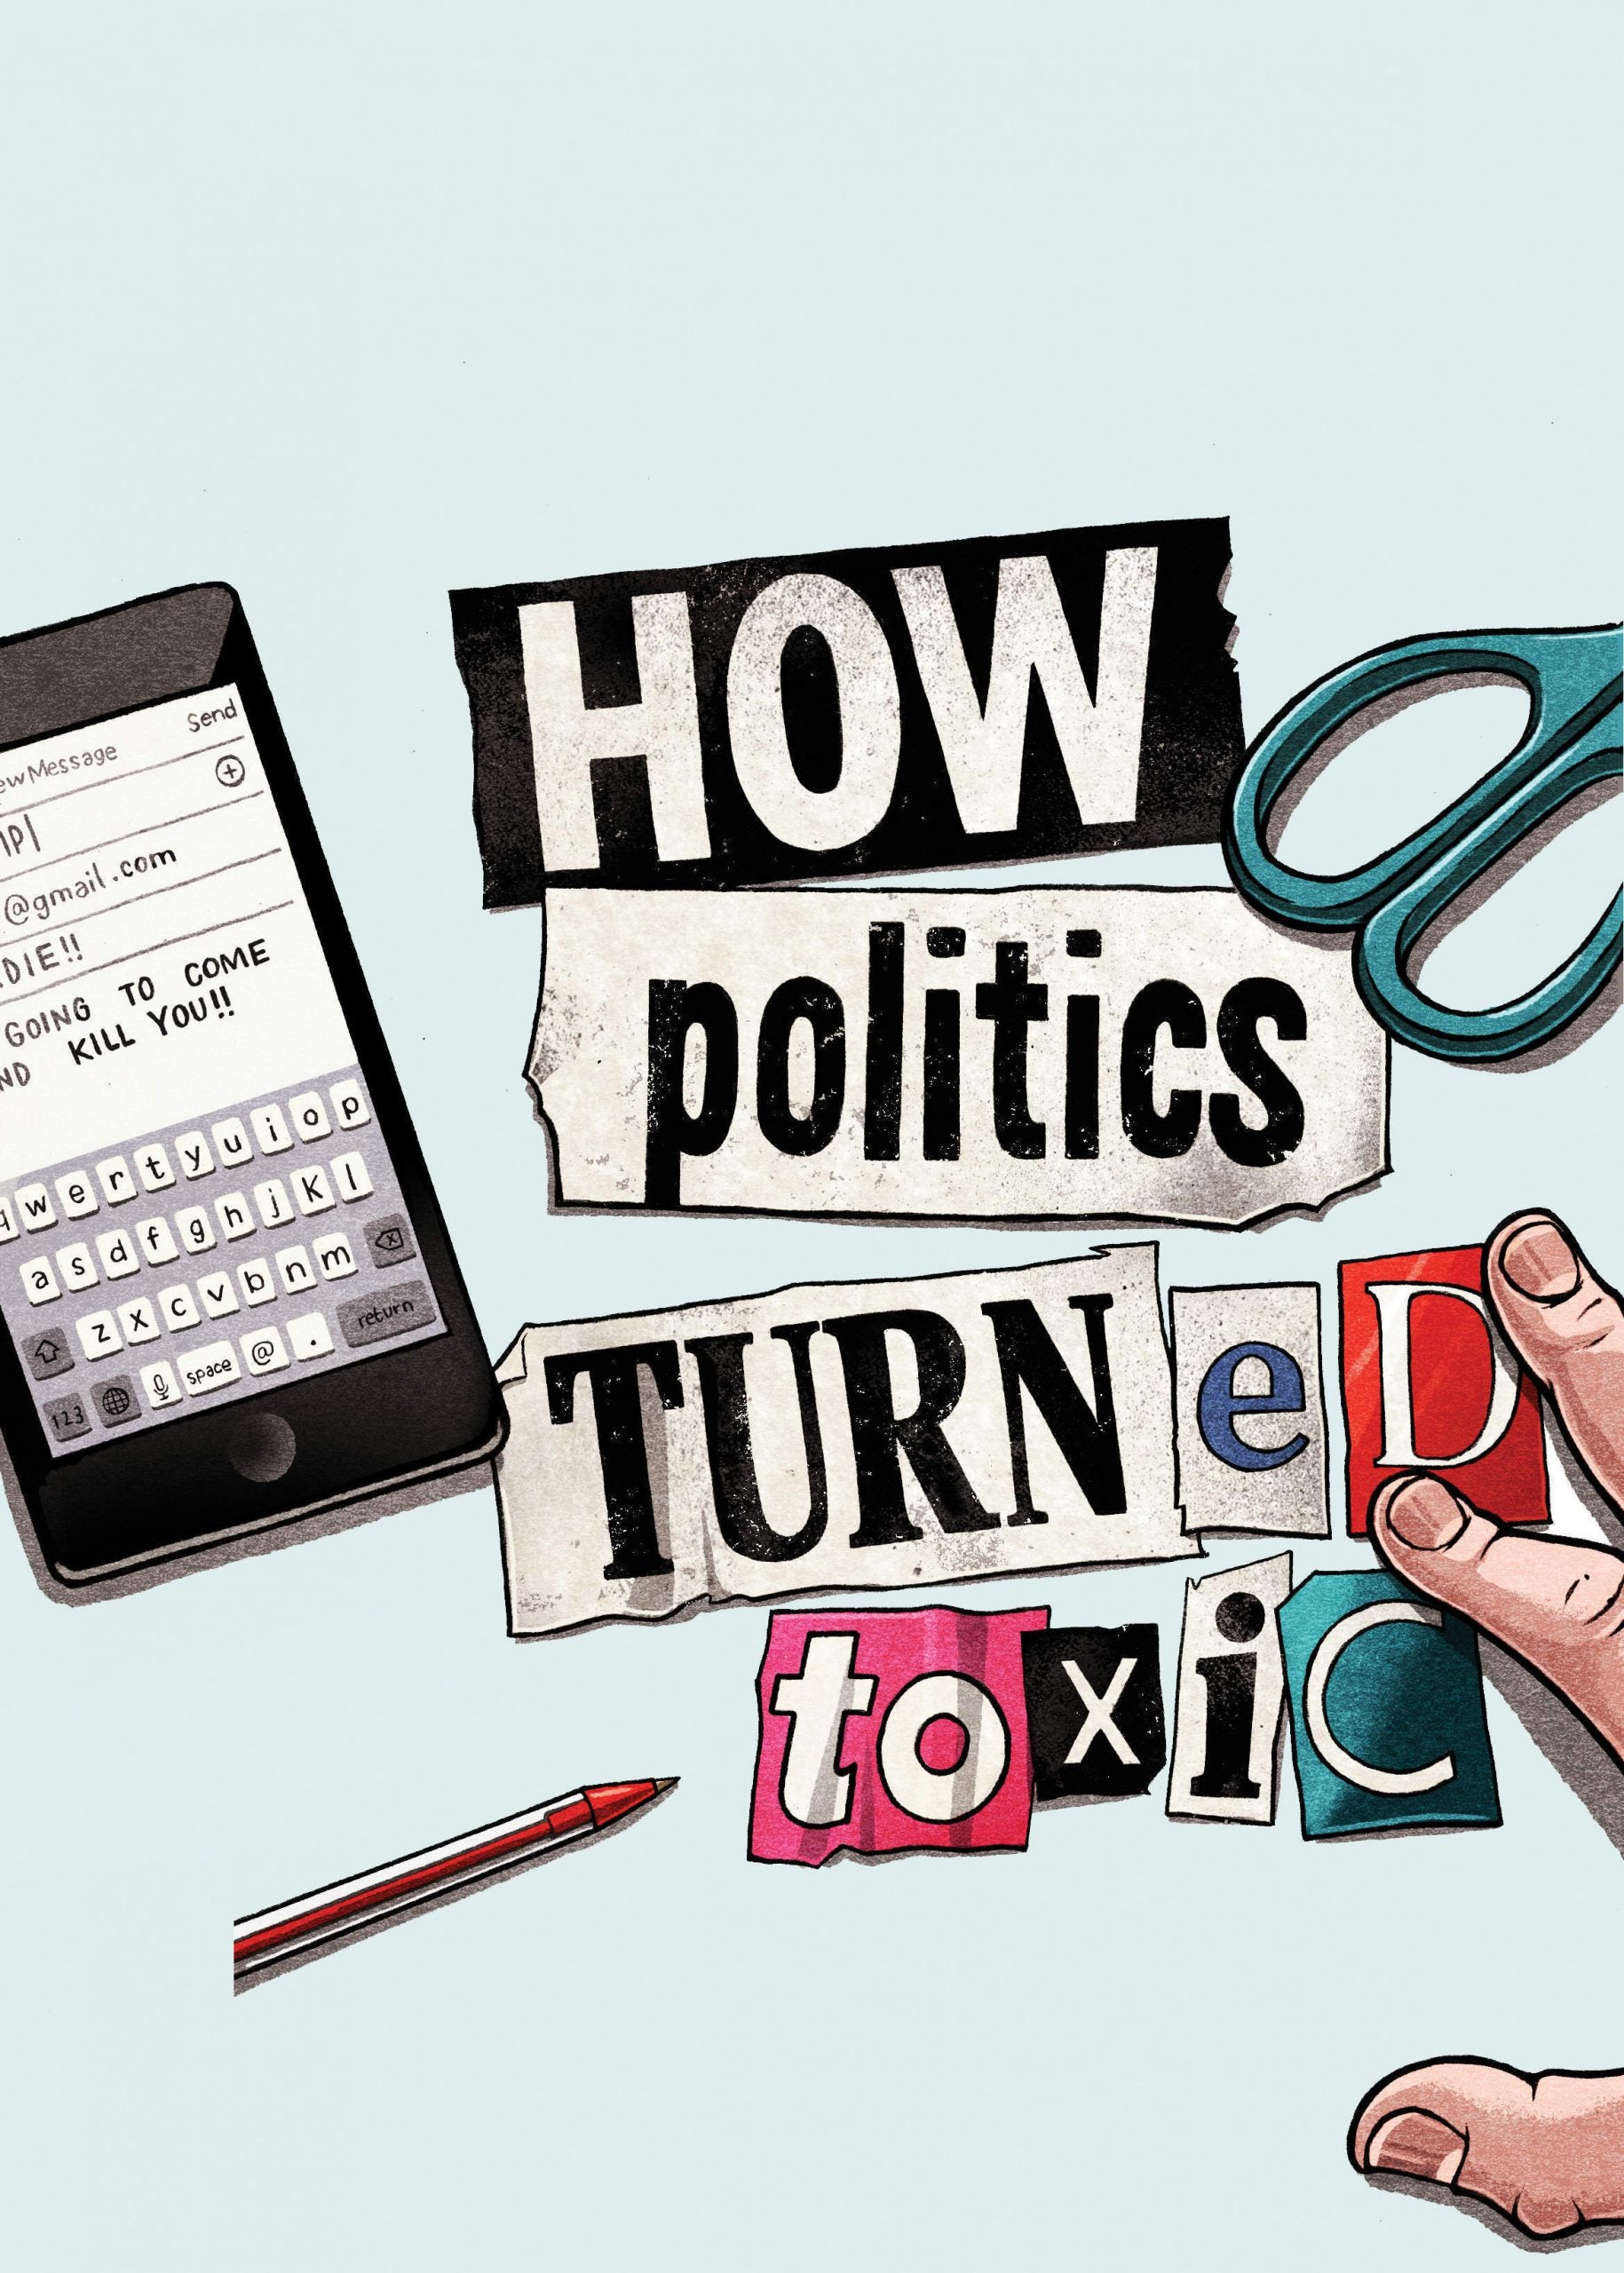 How Britain's political conversation turned toxic